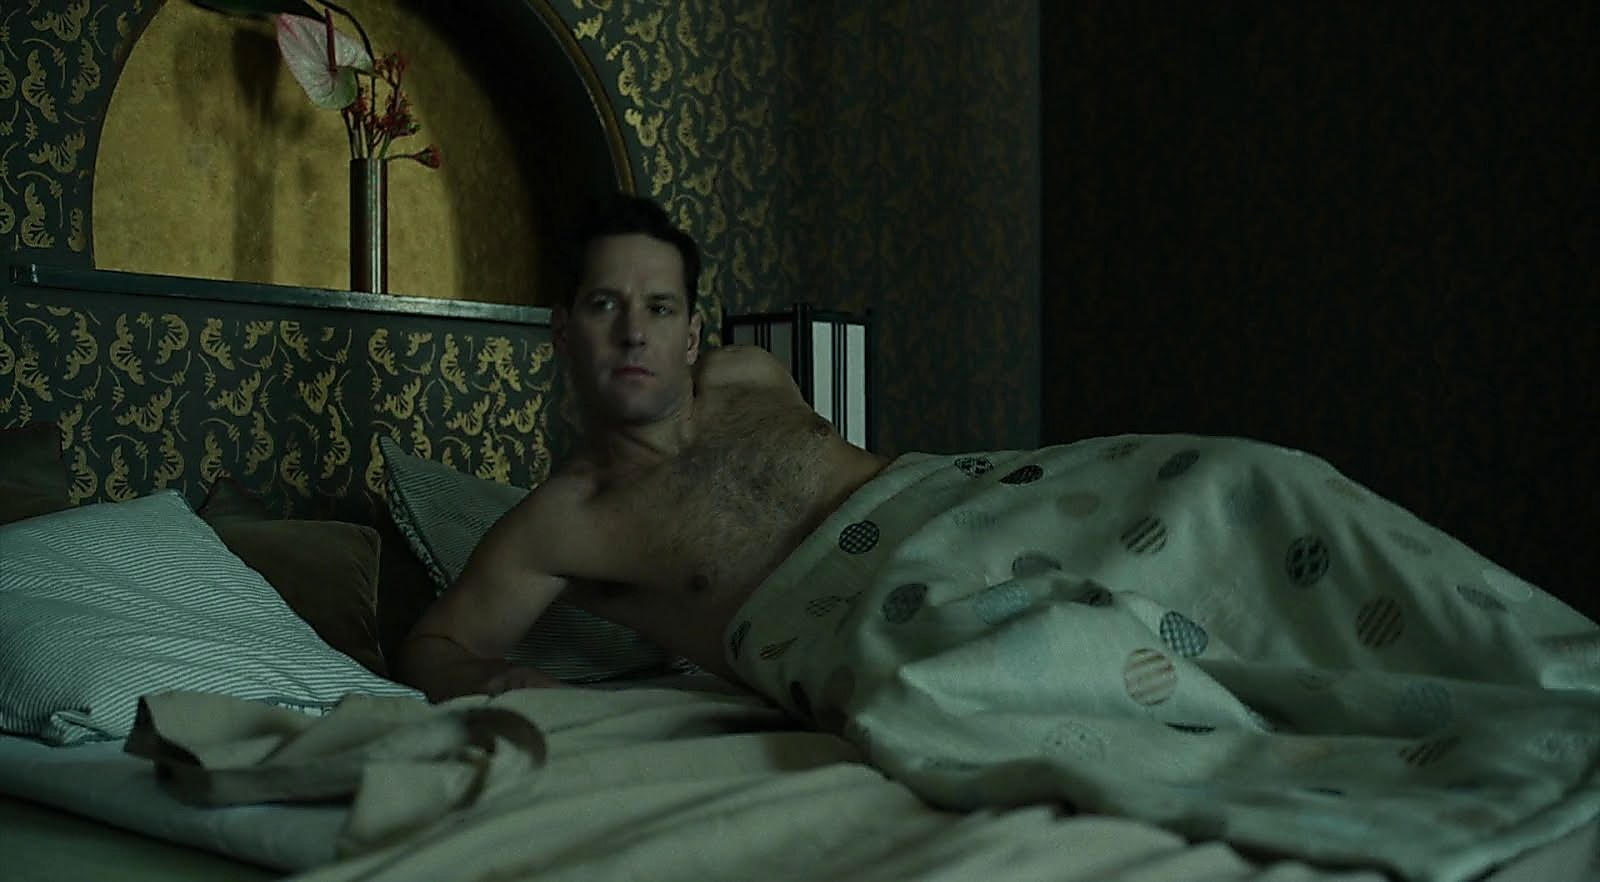 Paul Rudd sexy shirtless scene June 29, 2018, 12pm